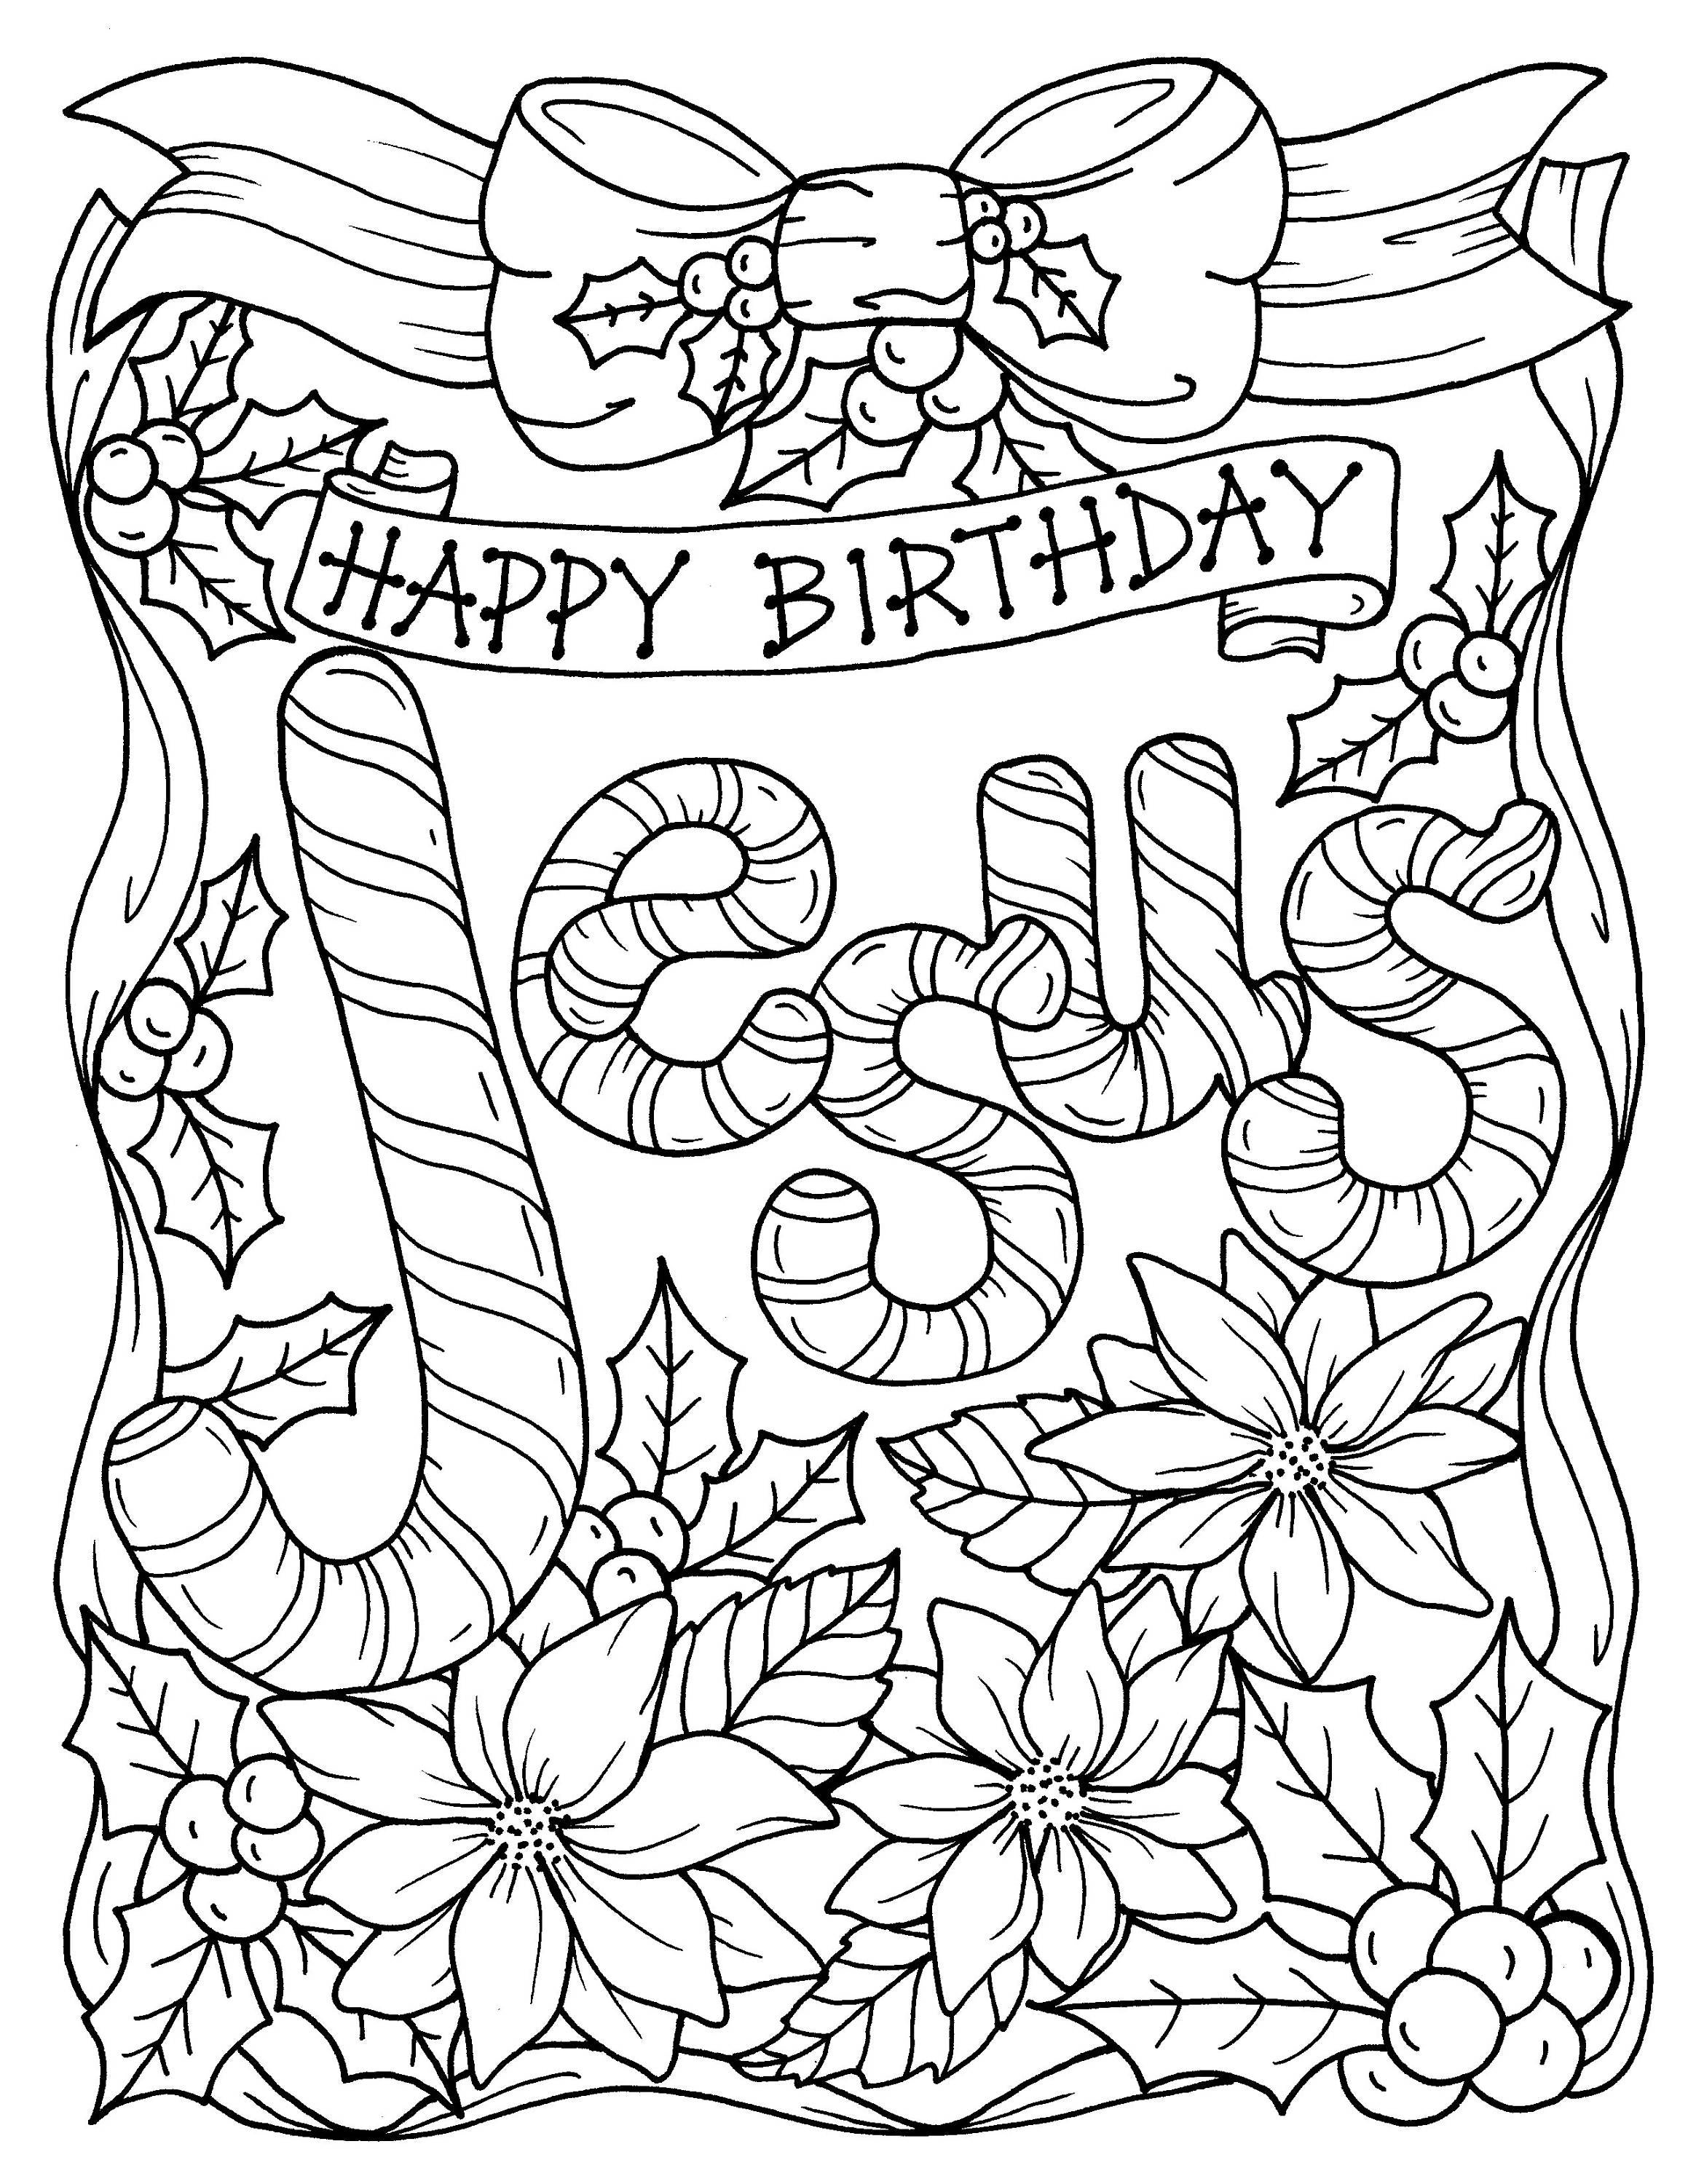 christmas coloring pages religious religious christmas coloring pages printable coloring christmas pages religious